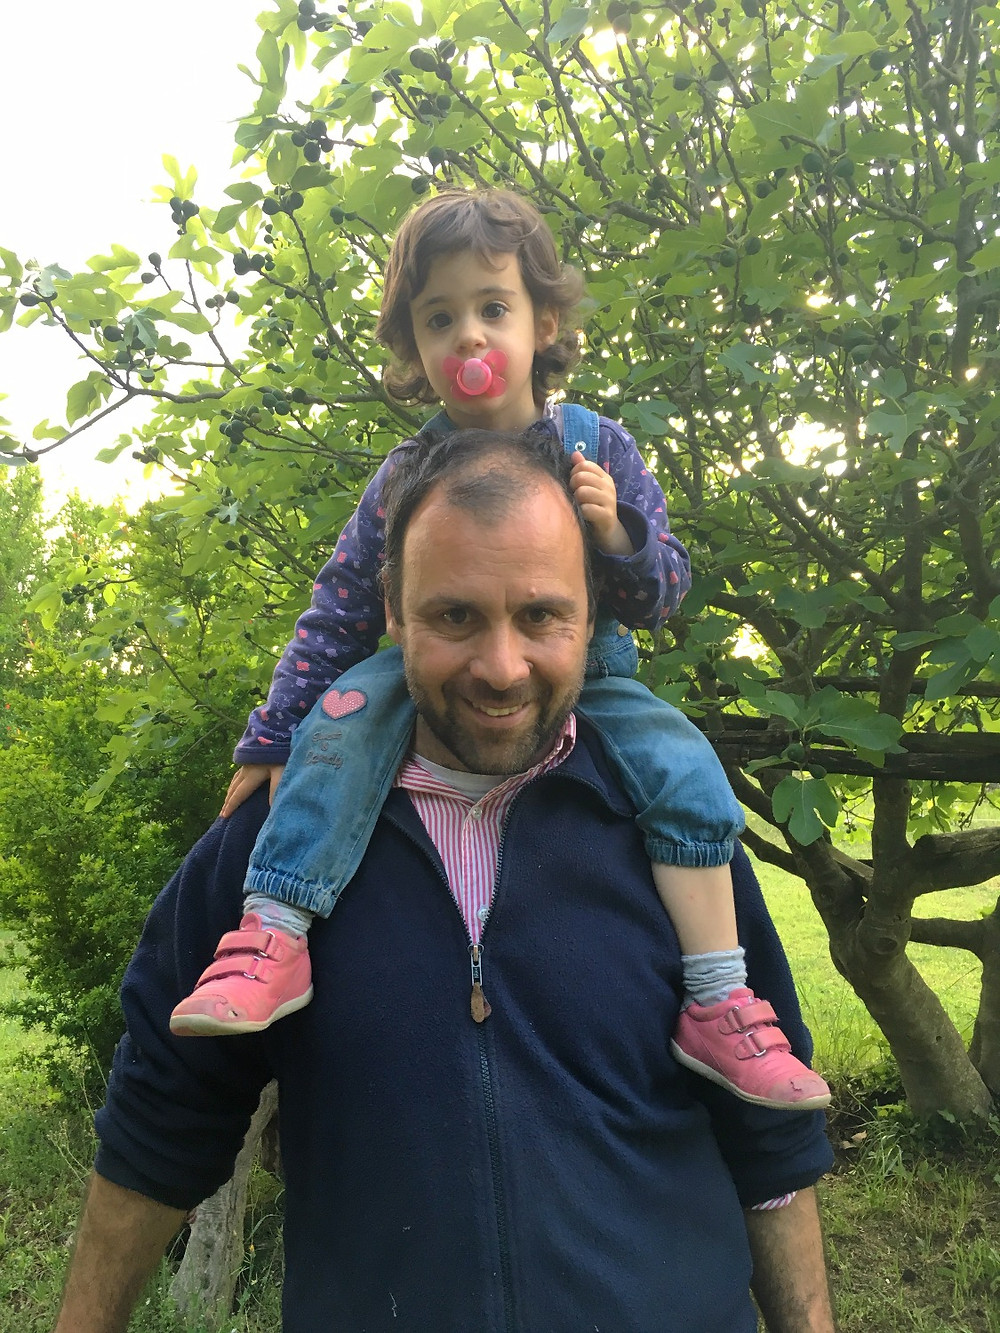 Lorenzo Caponetti with daughter on his shoulders